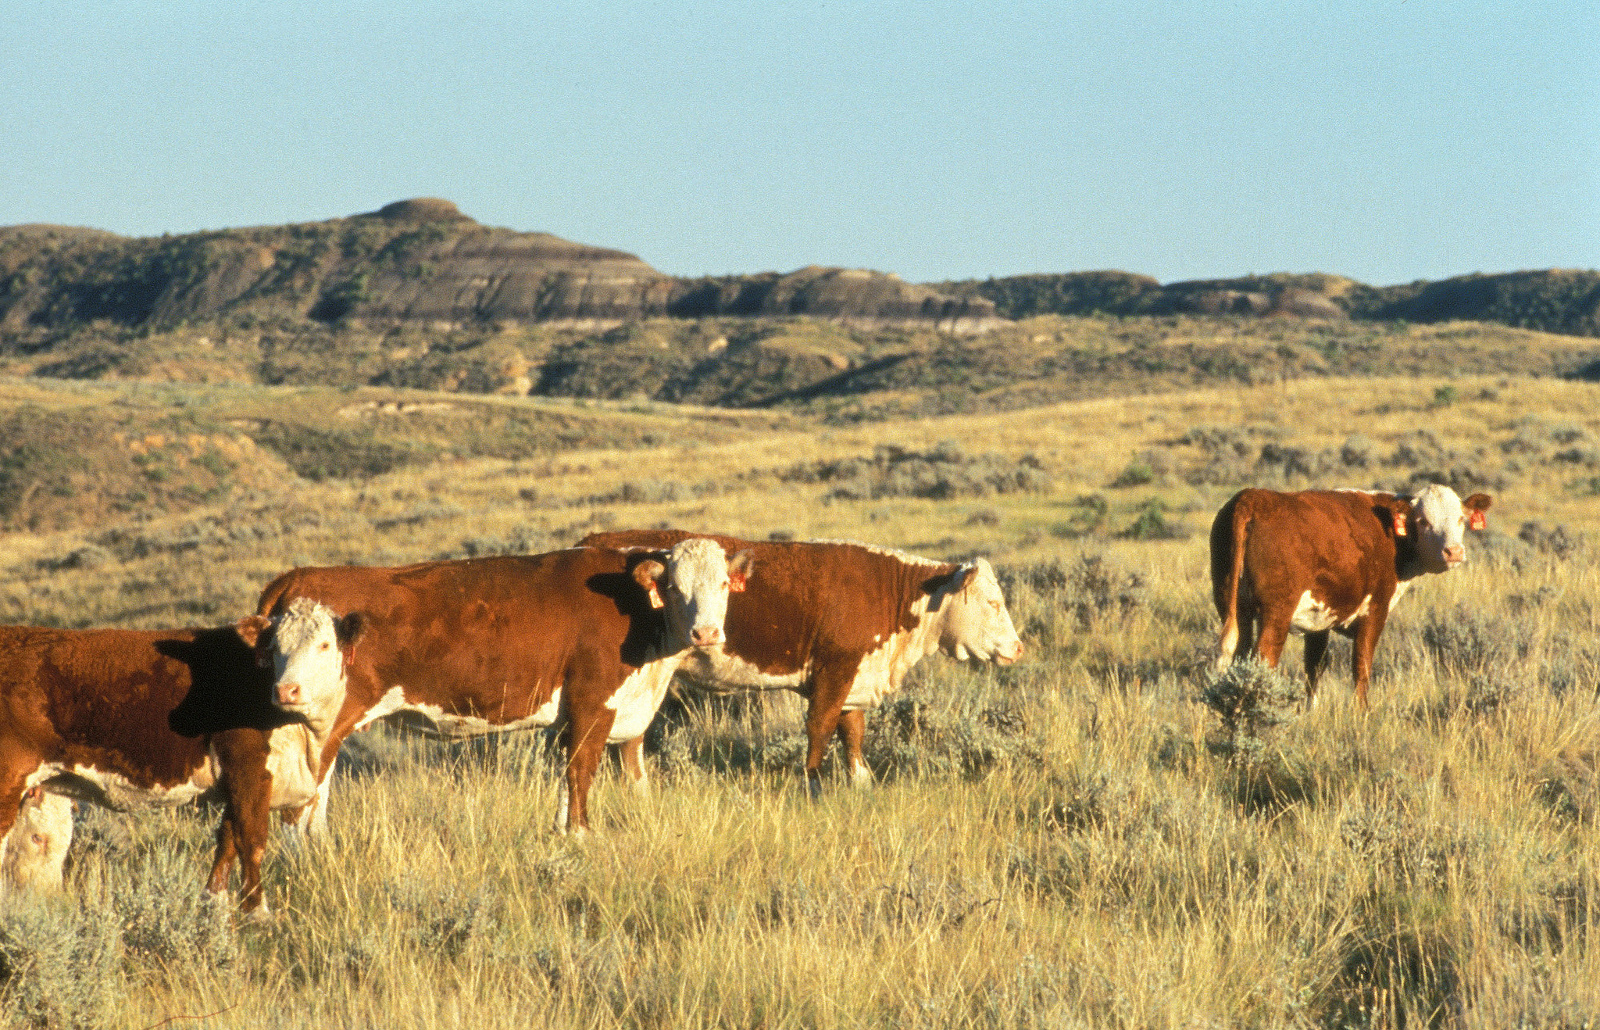 Why are American Public Forests and Parks Being Sold and Destroyed to Produce Meat?